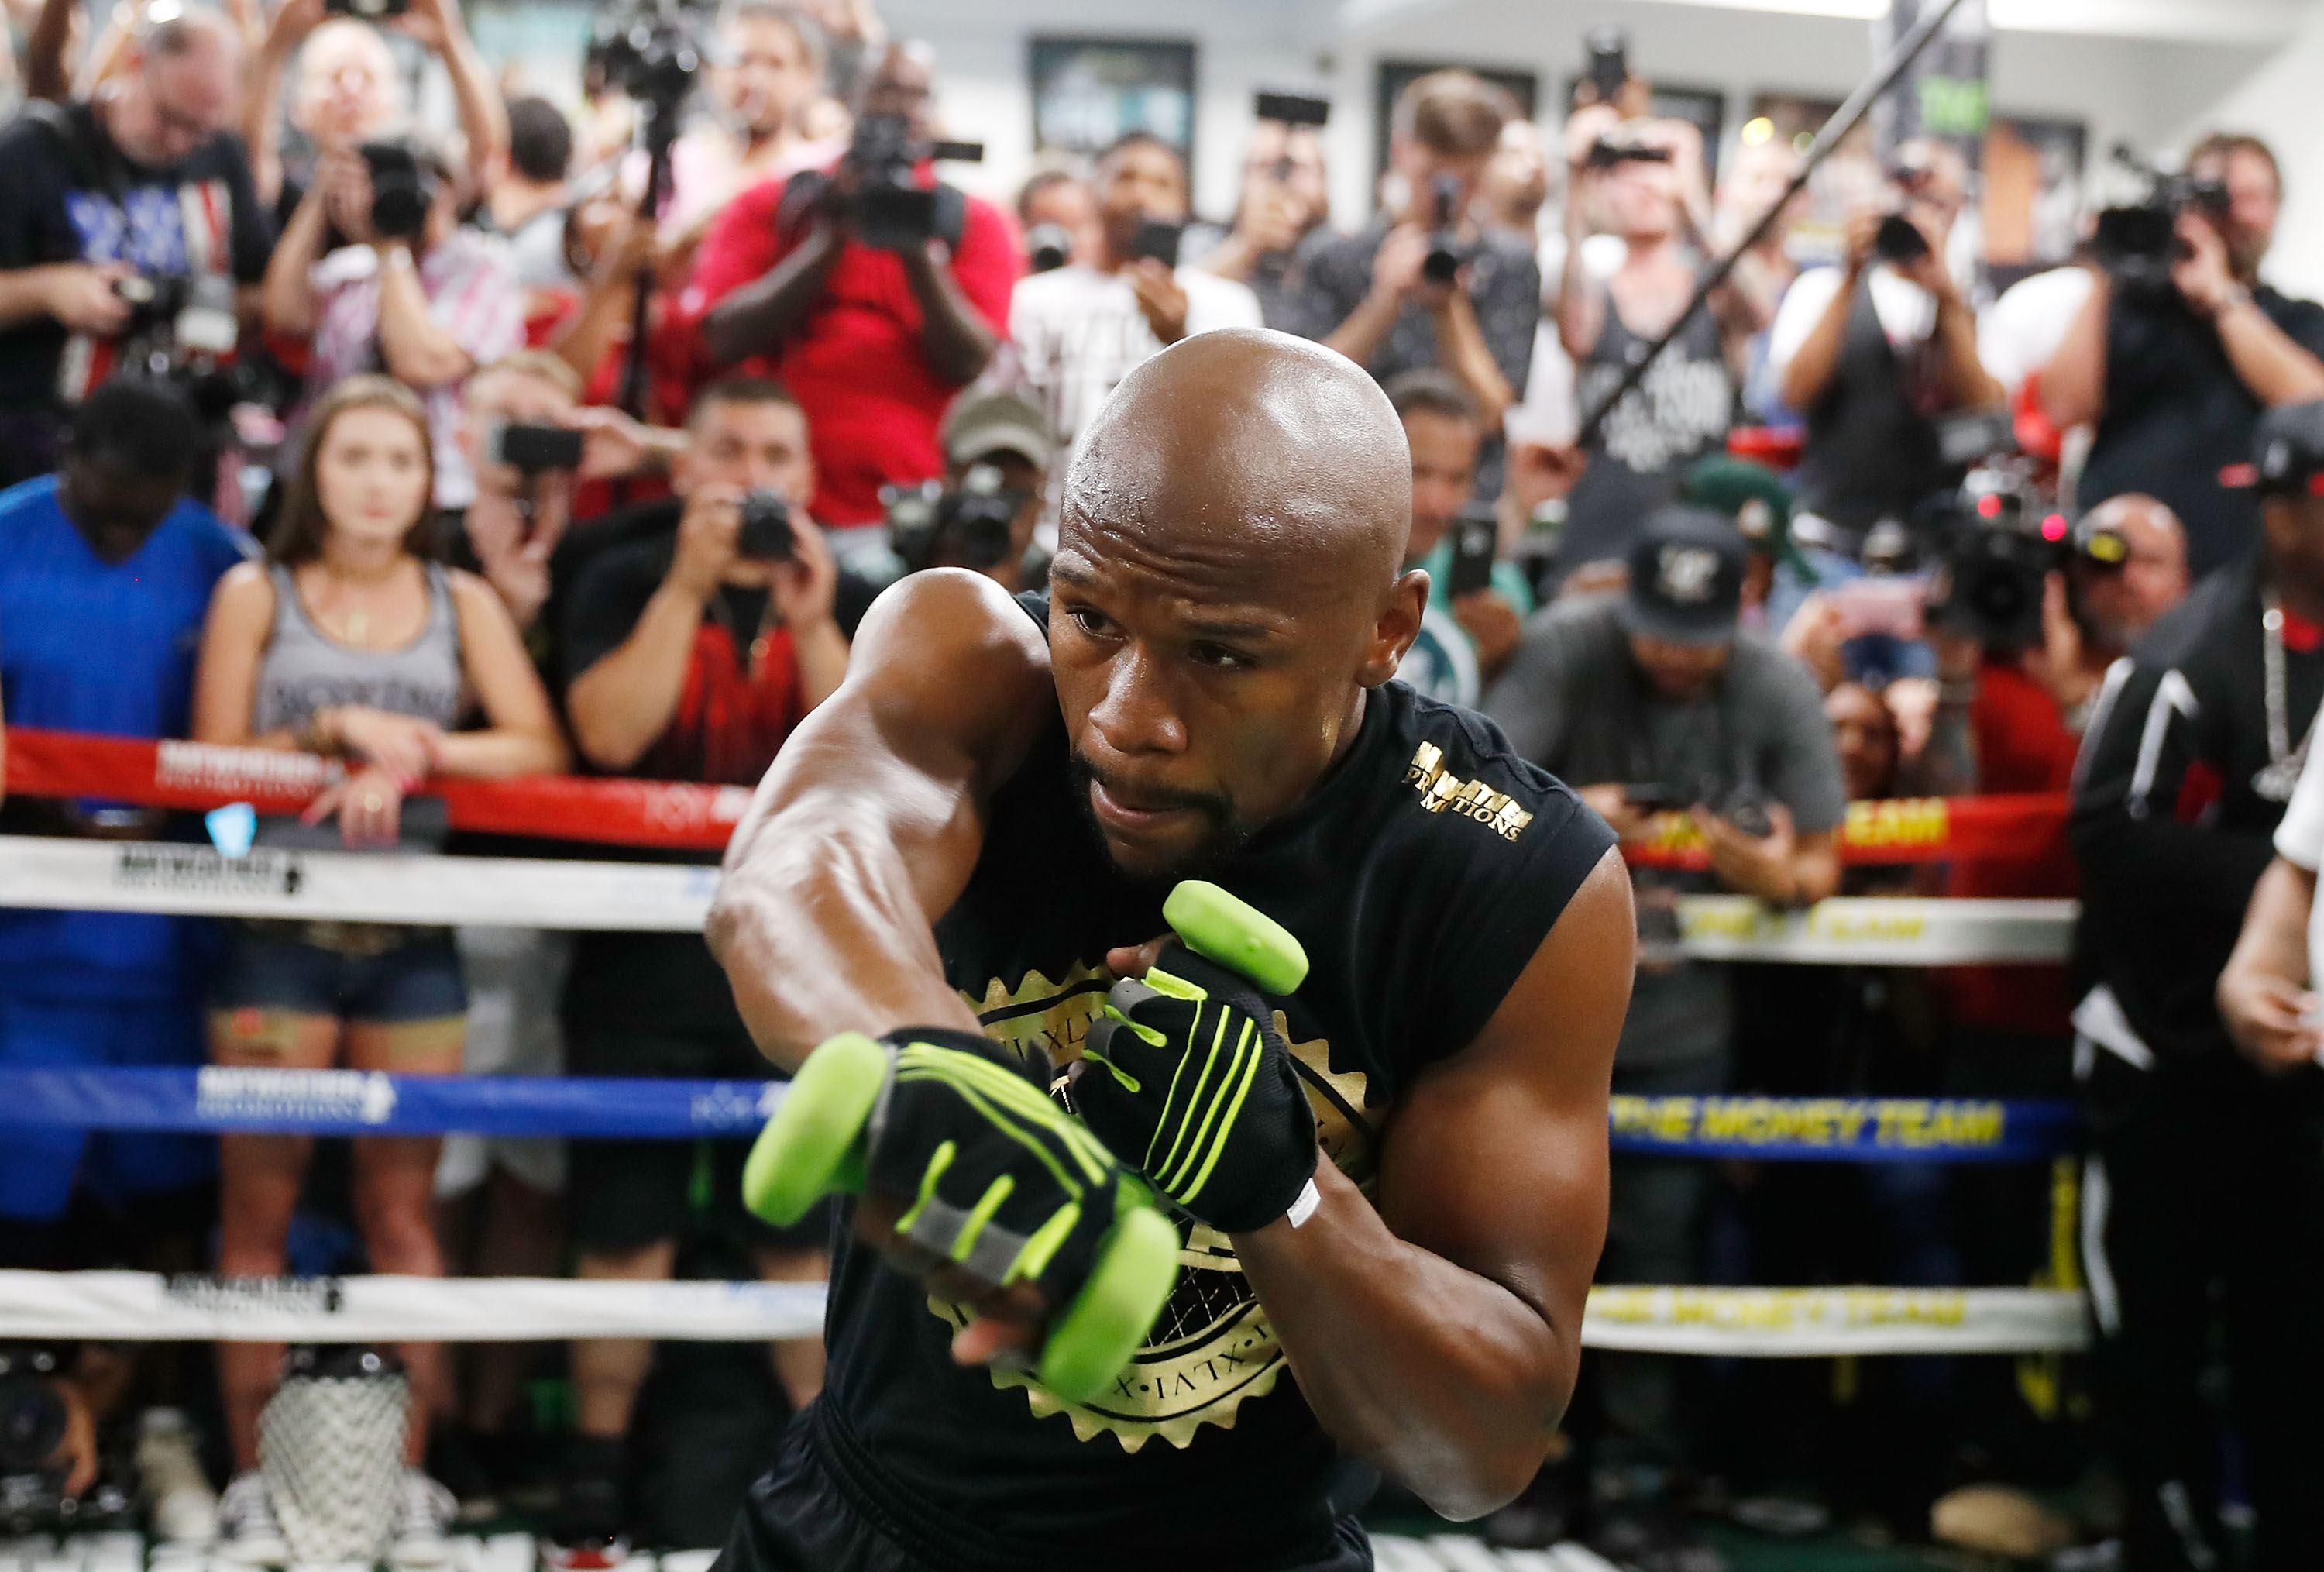 Floyd Mayweather Jr. holds a media workout at the Mayweather Boxing Club on August 10, 2017 in Las Vegas, Nevada. Mayweather will face UFC lightweight champion Conor McGregor in a boxing match at T-Mobile Arena on August 26 in Las Vegas.